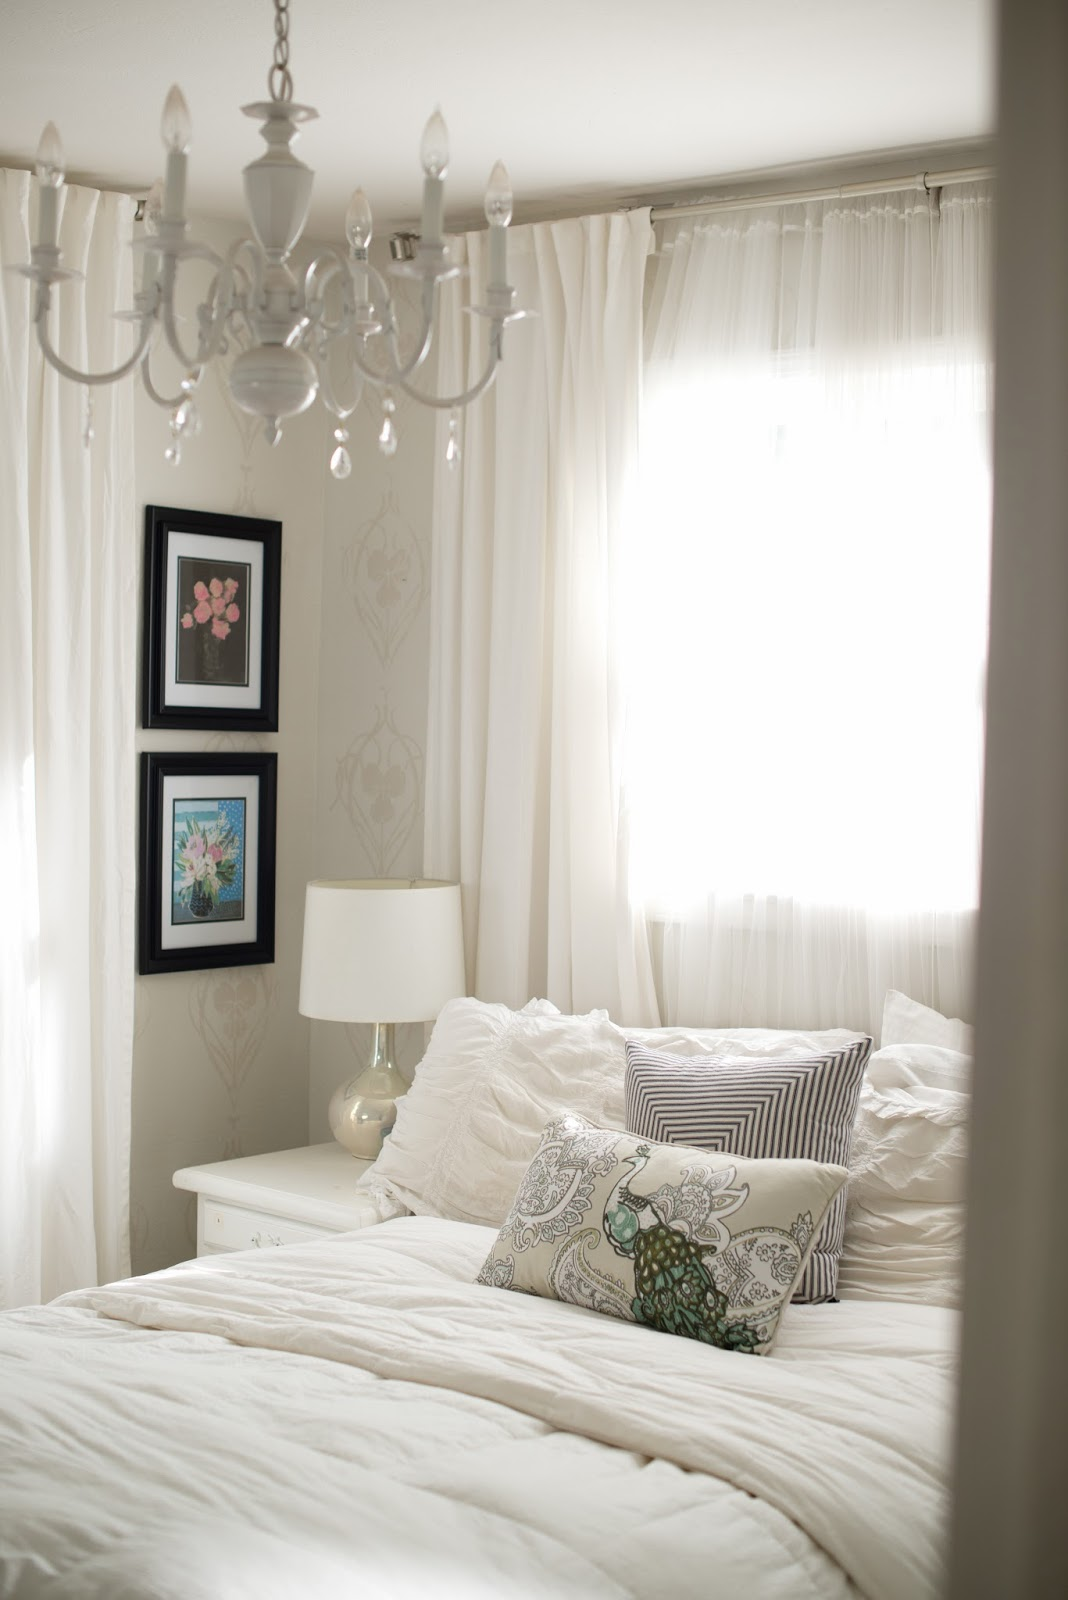 Image Result For Blue Room Decorating Ideas How To Use Blue Wall Paint